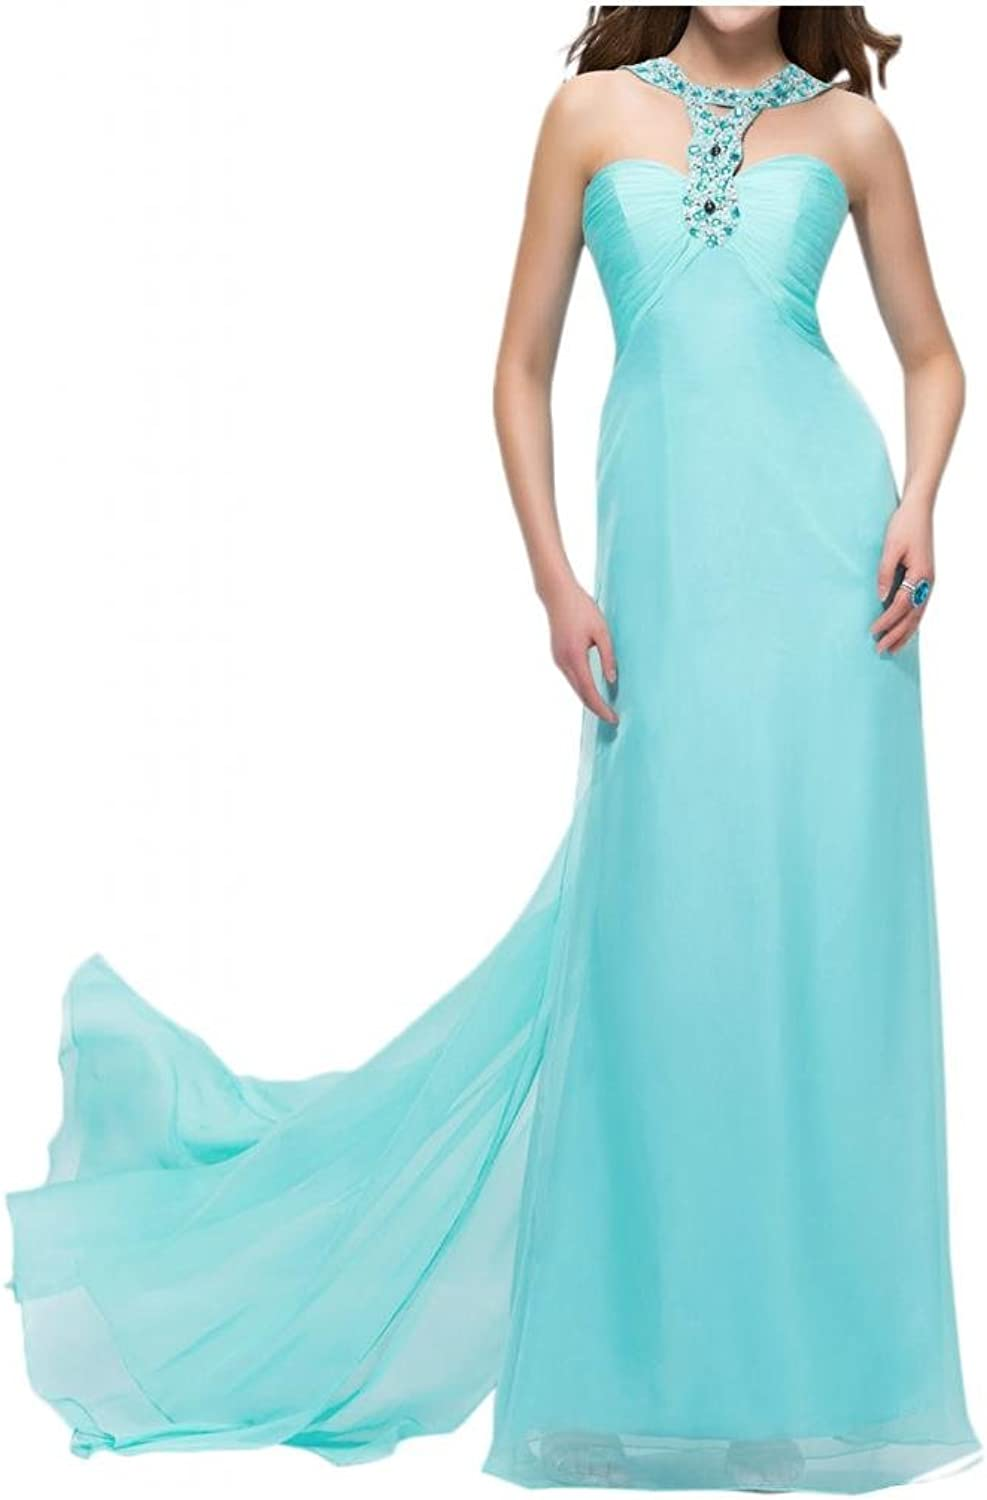 Angel Bride Graceful Empire Floor Length Evening Prom Gowns with Train